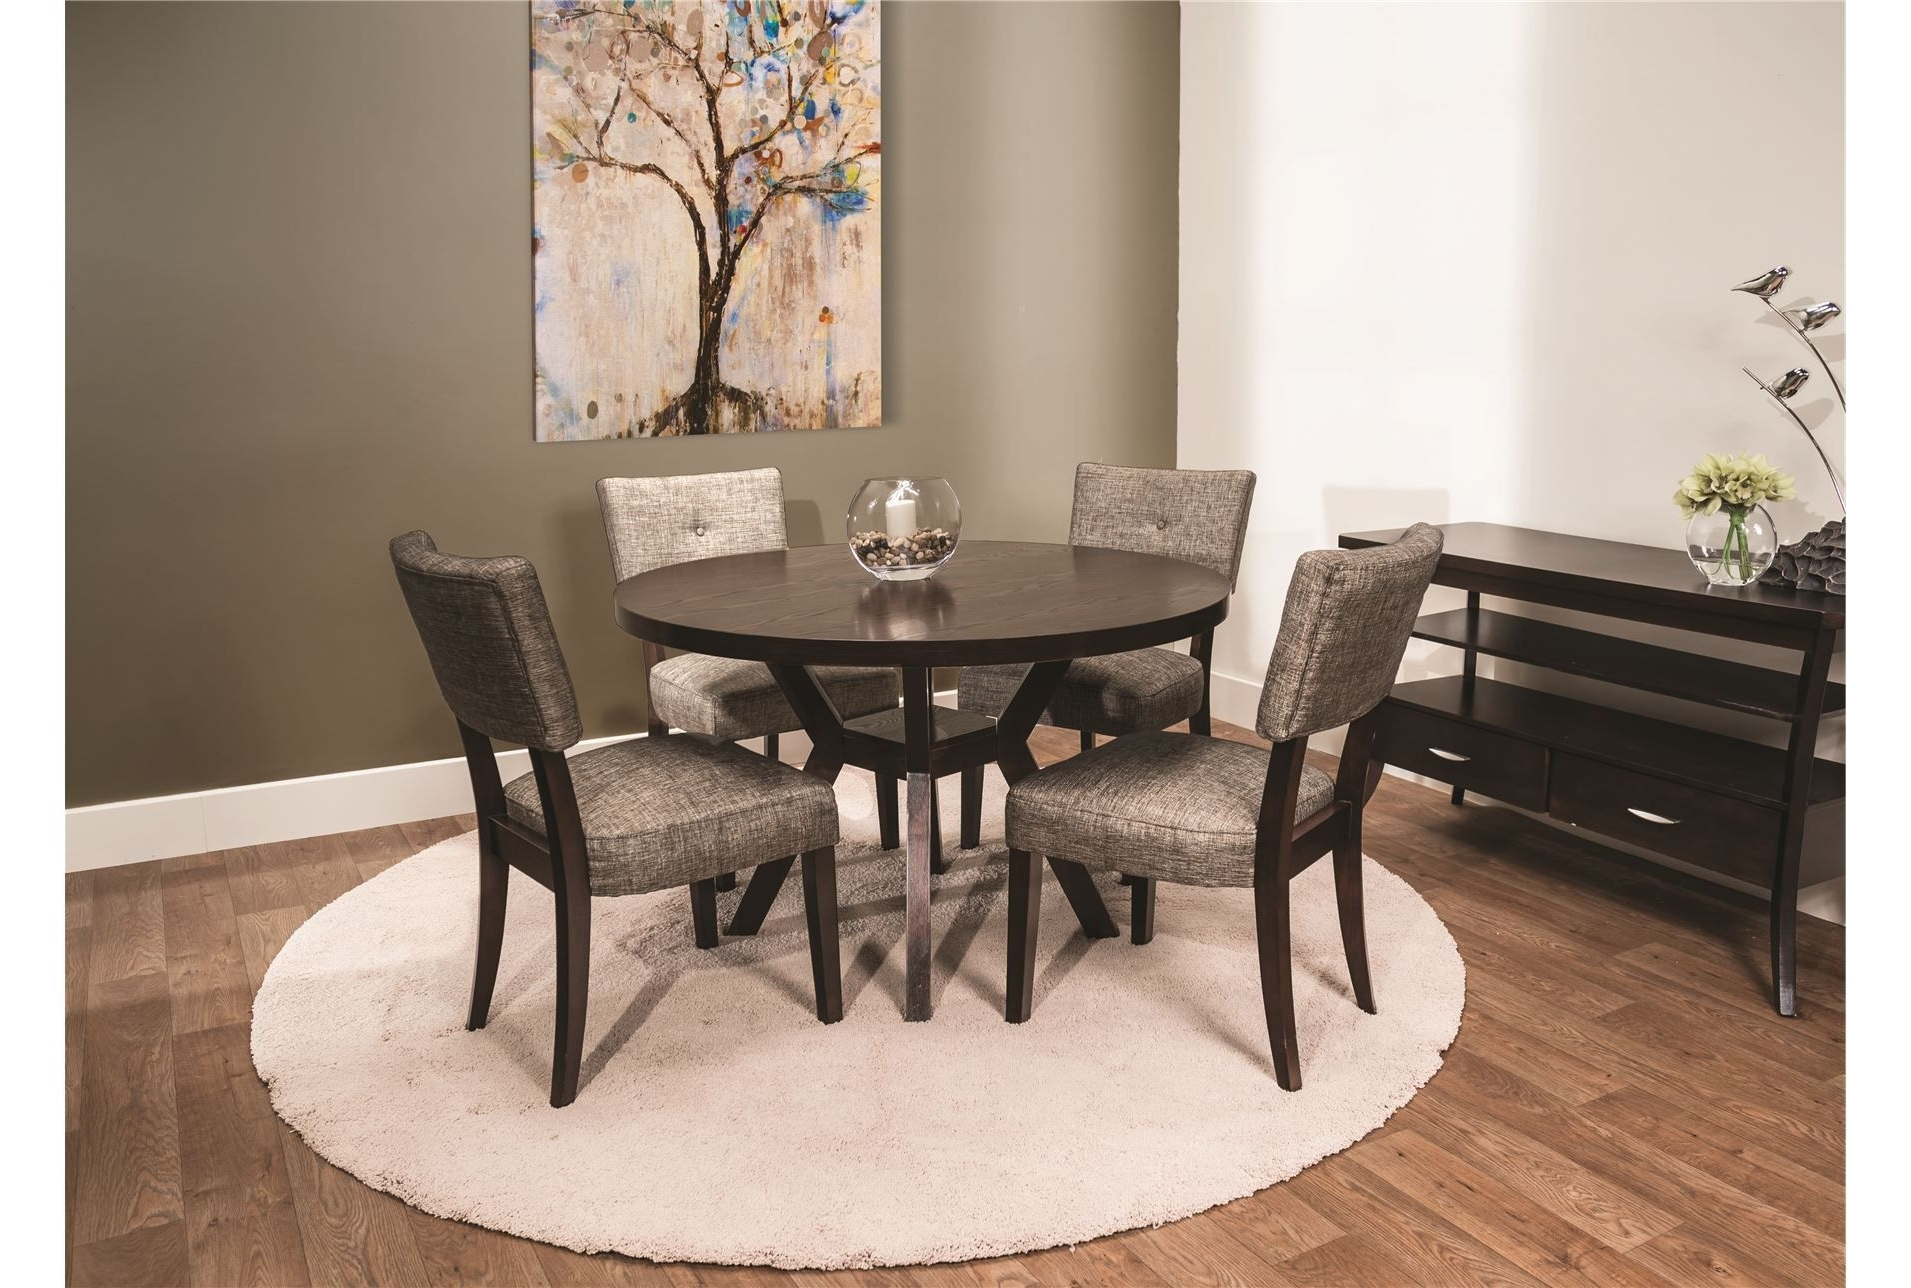 Widely Used Macie Round 5 Piece Dining (View 2 of 25)